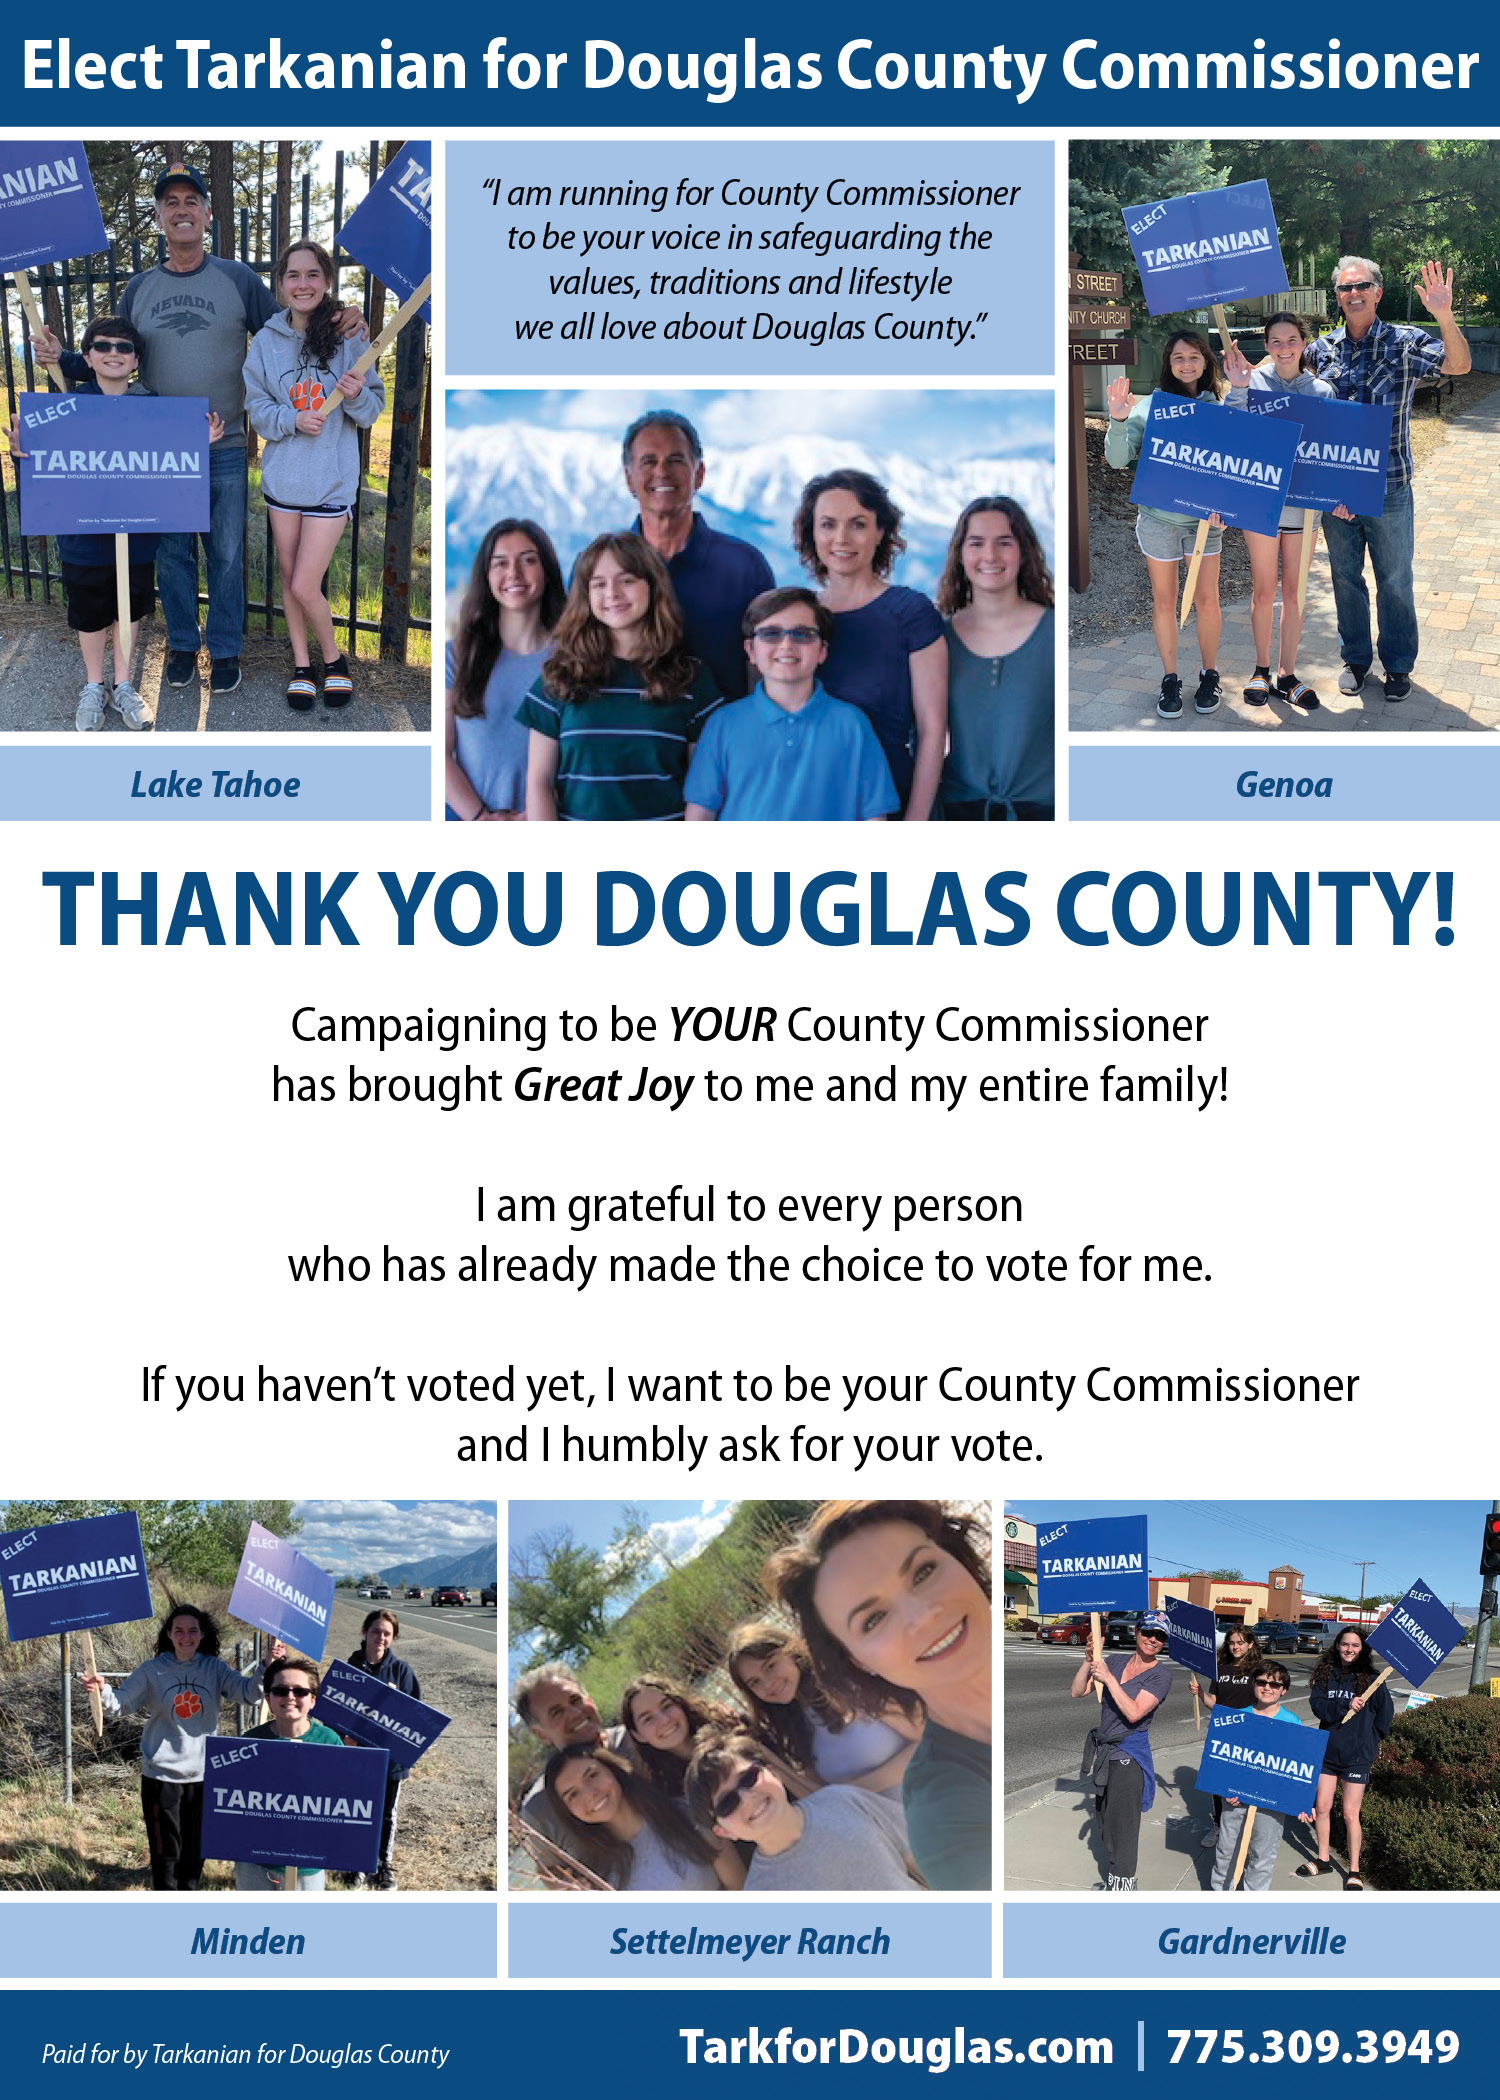 Thank You Douglas County!